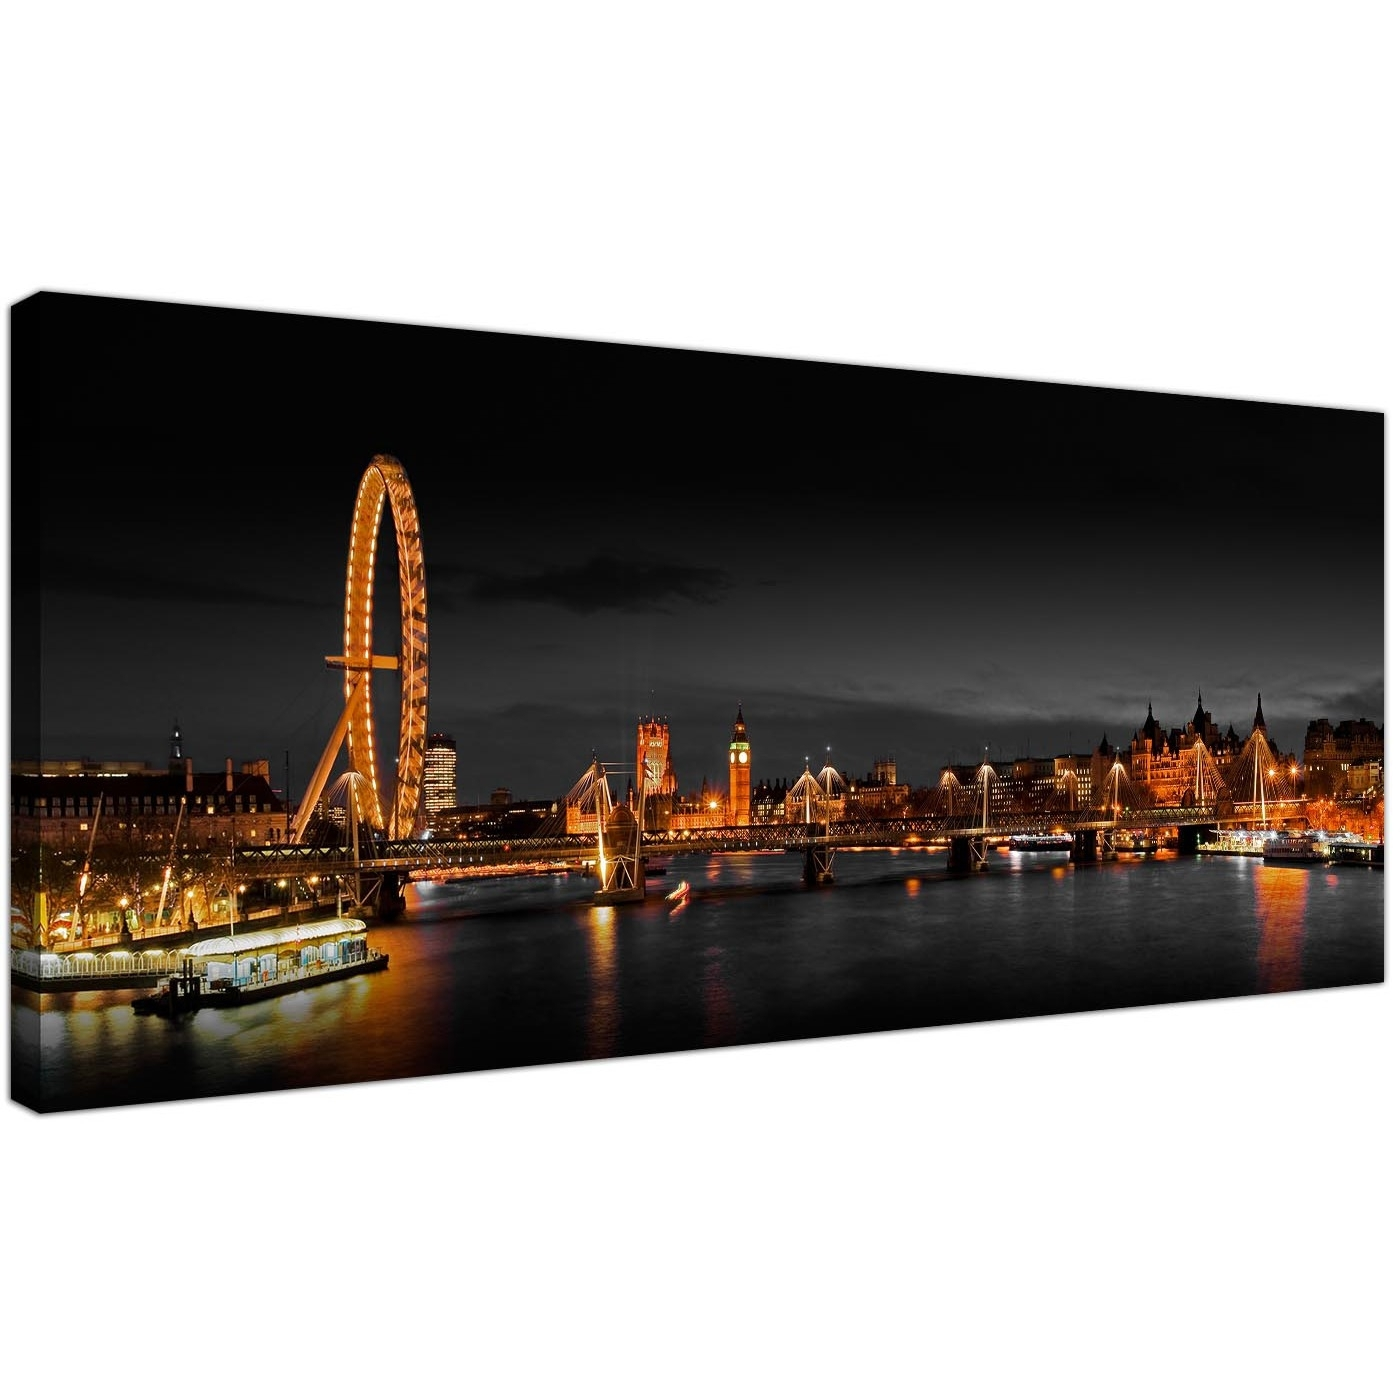 Panoramic Canvas Wall Art Of London Eye At Night For Your Living Room Regarding Latest Cheap Canvas Wall Art (View 11 of 15)